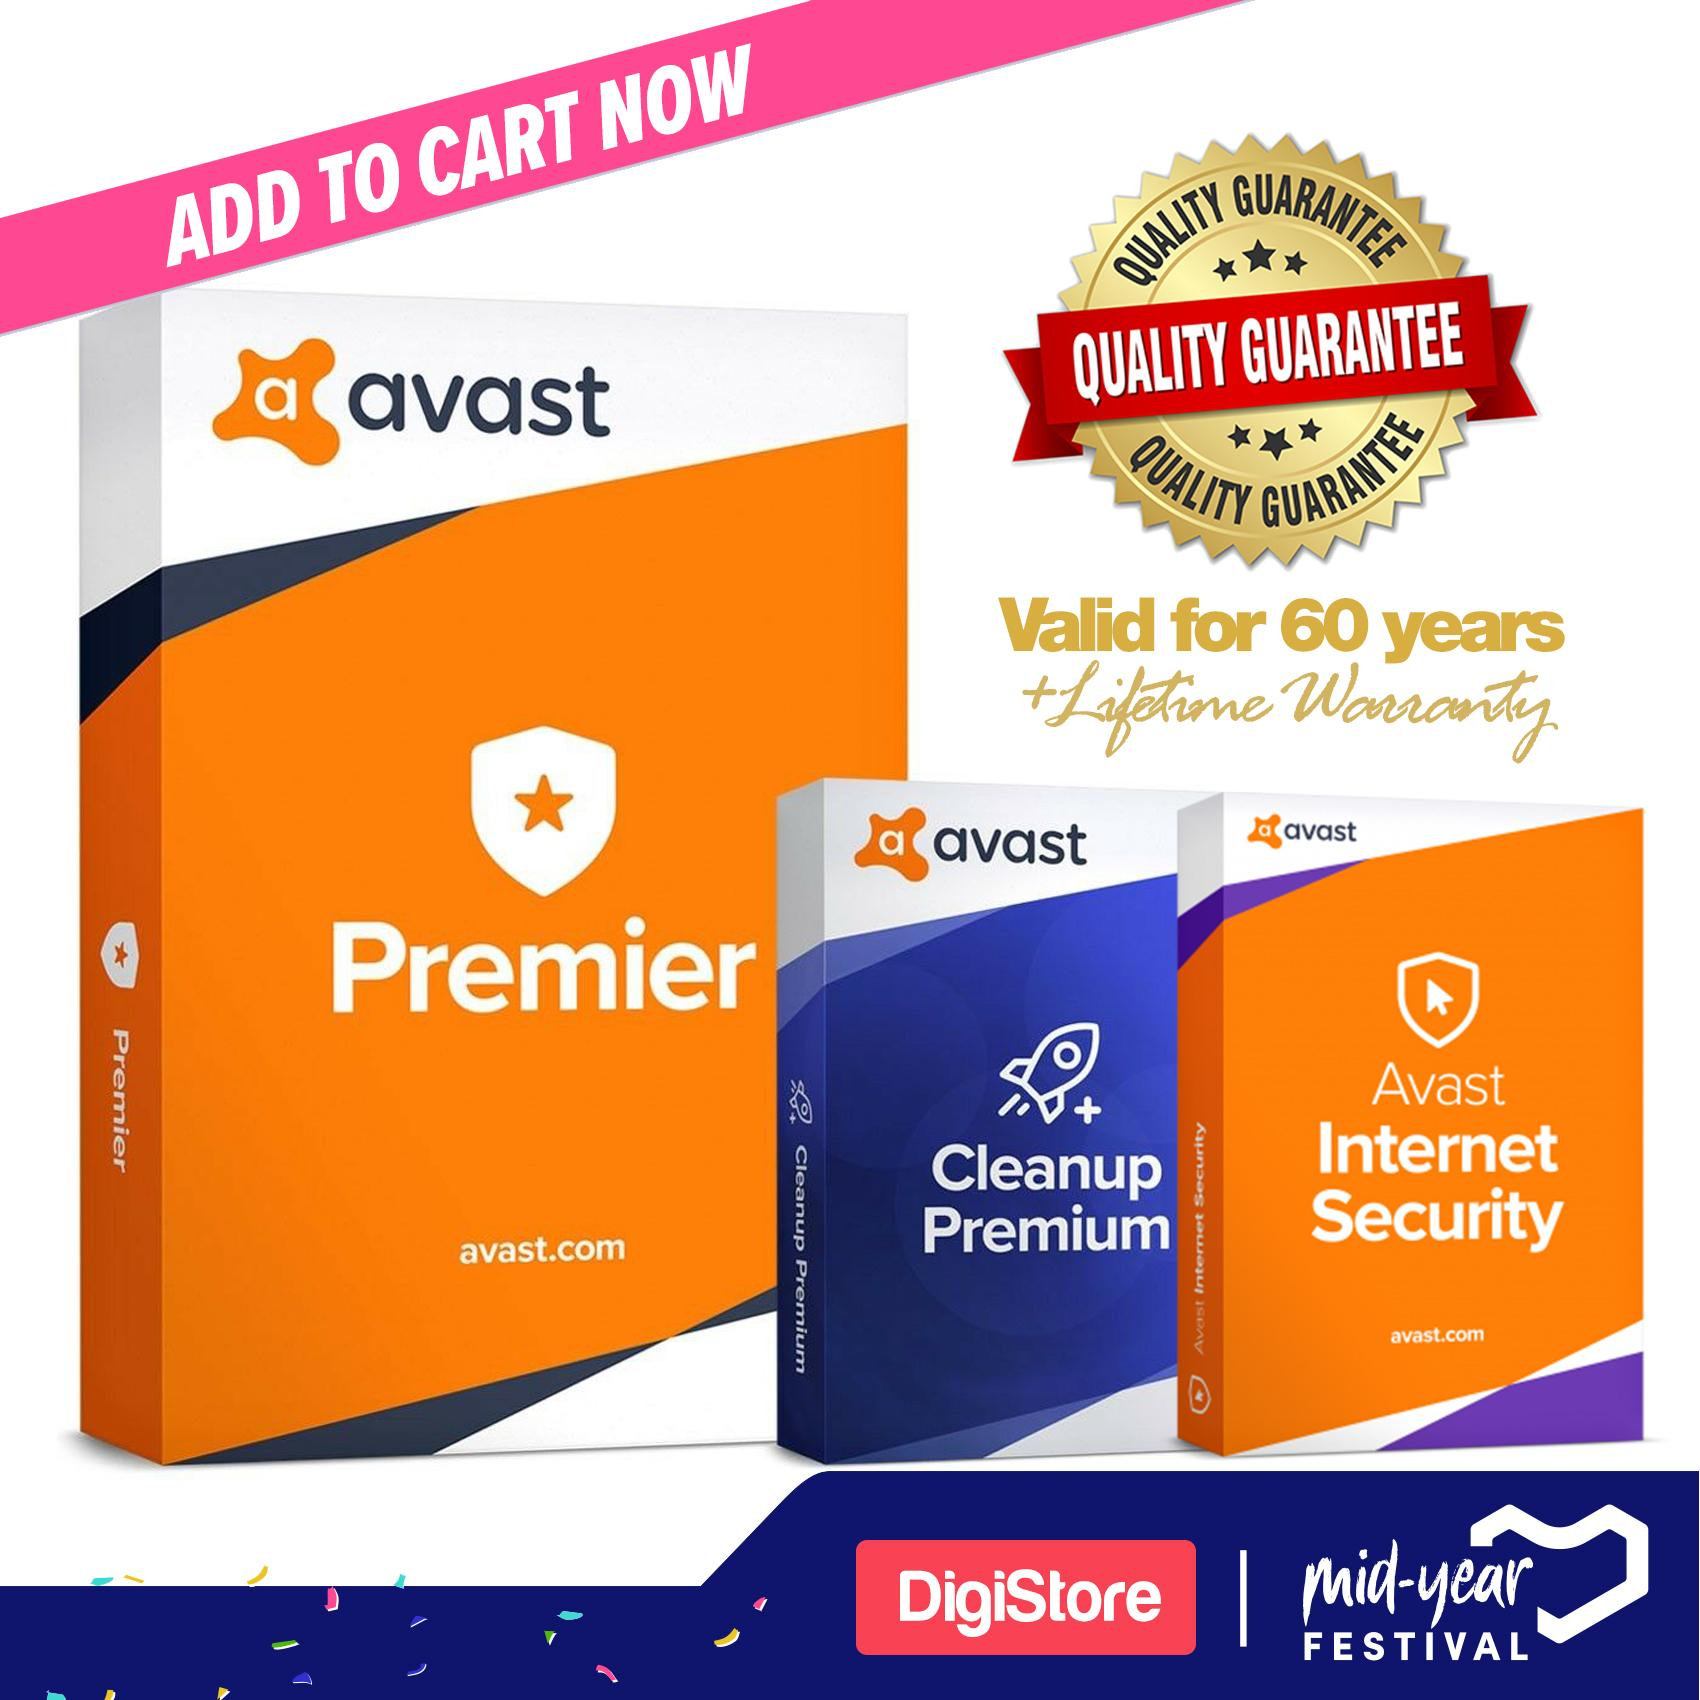 Avast Premier 2019 Antivirus + Avast Internet Security 60 years + Avast  Clean Up Premium Licence Genuine Product Key for 5 PC for Full Warranty  Fast